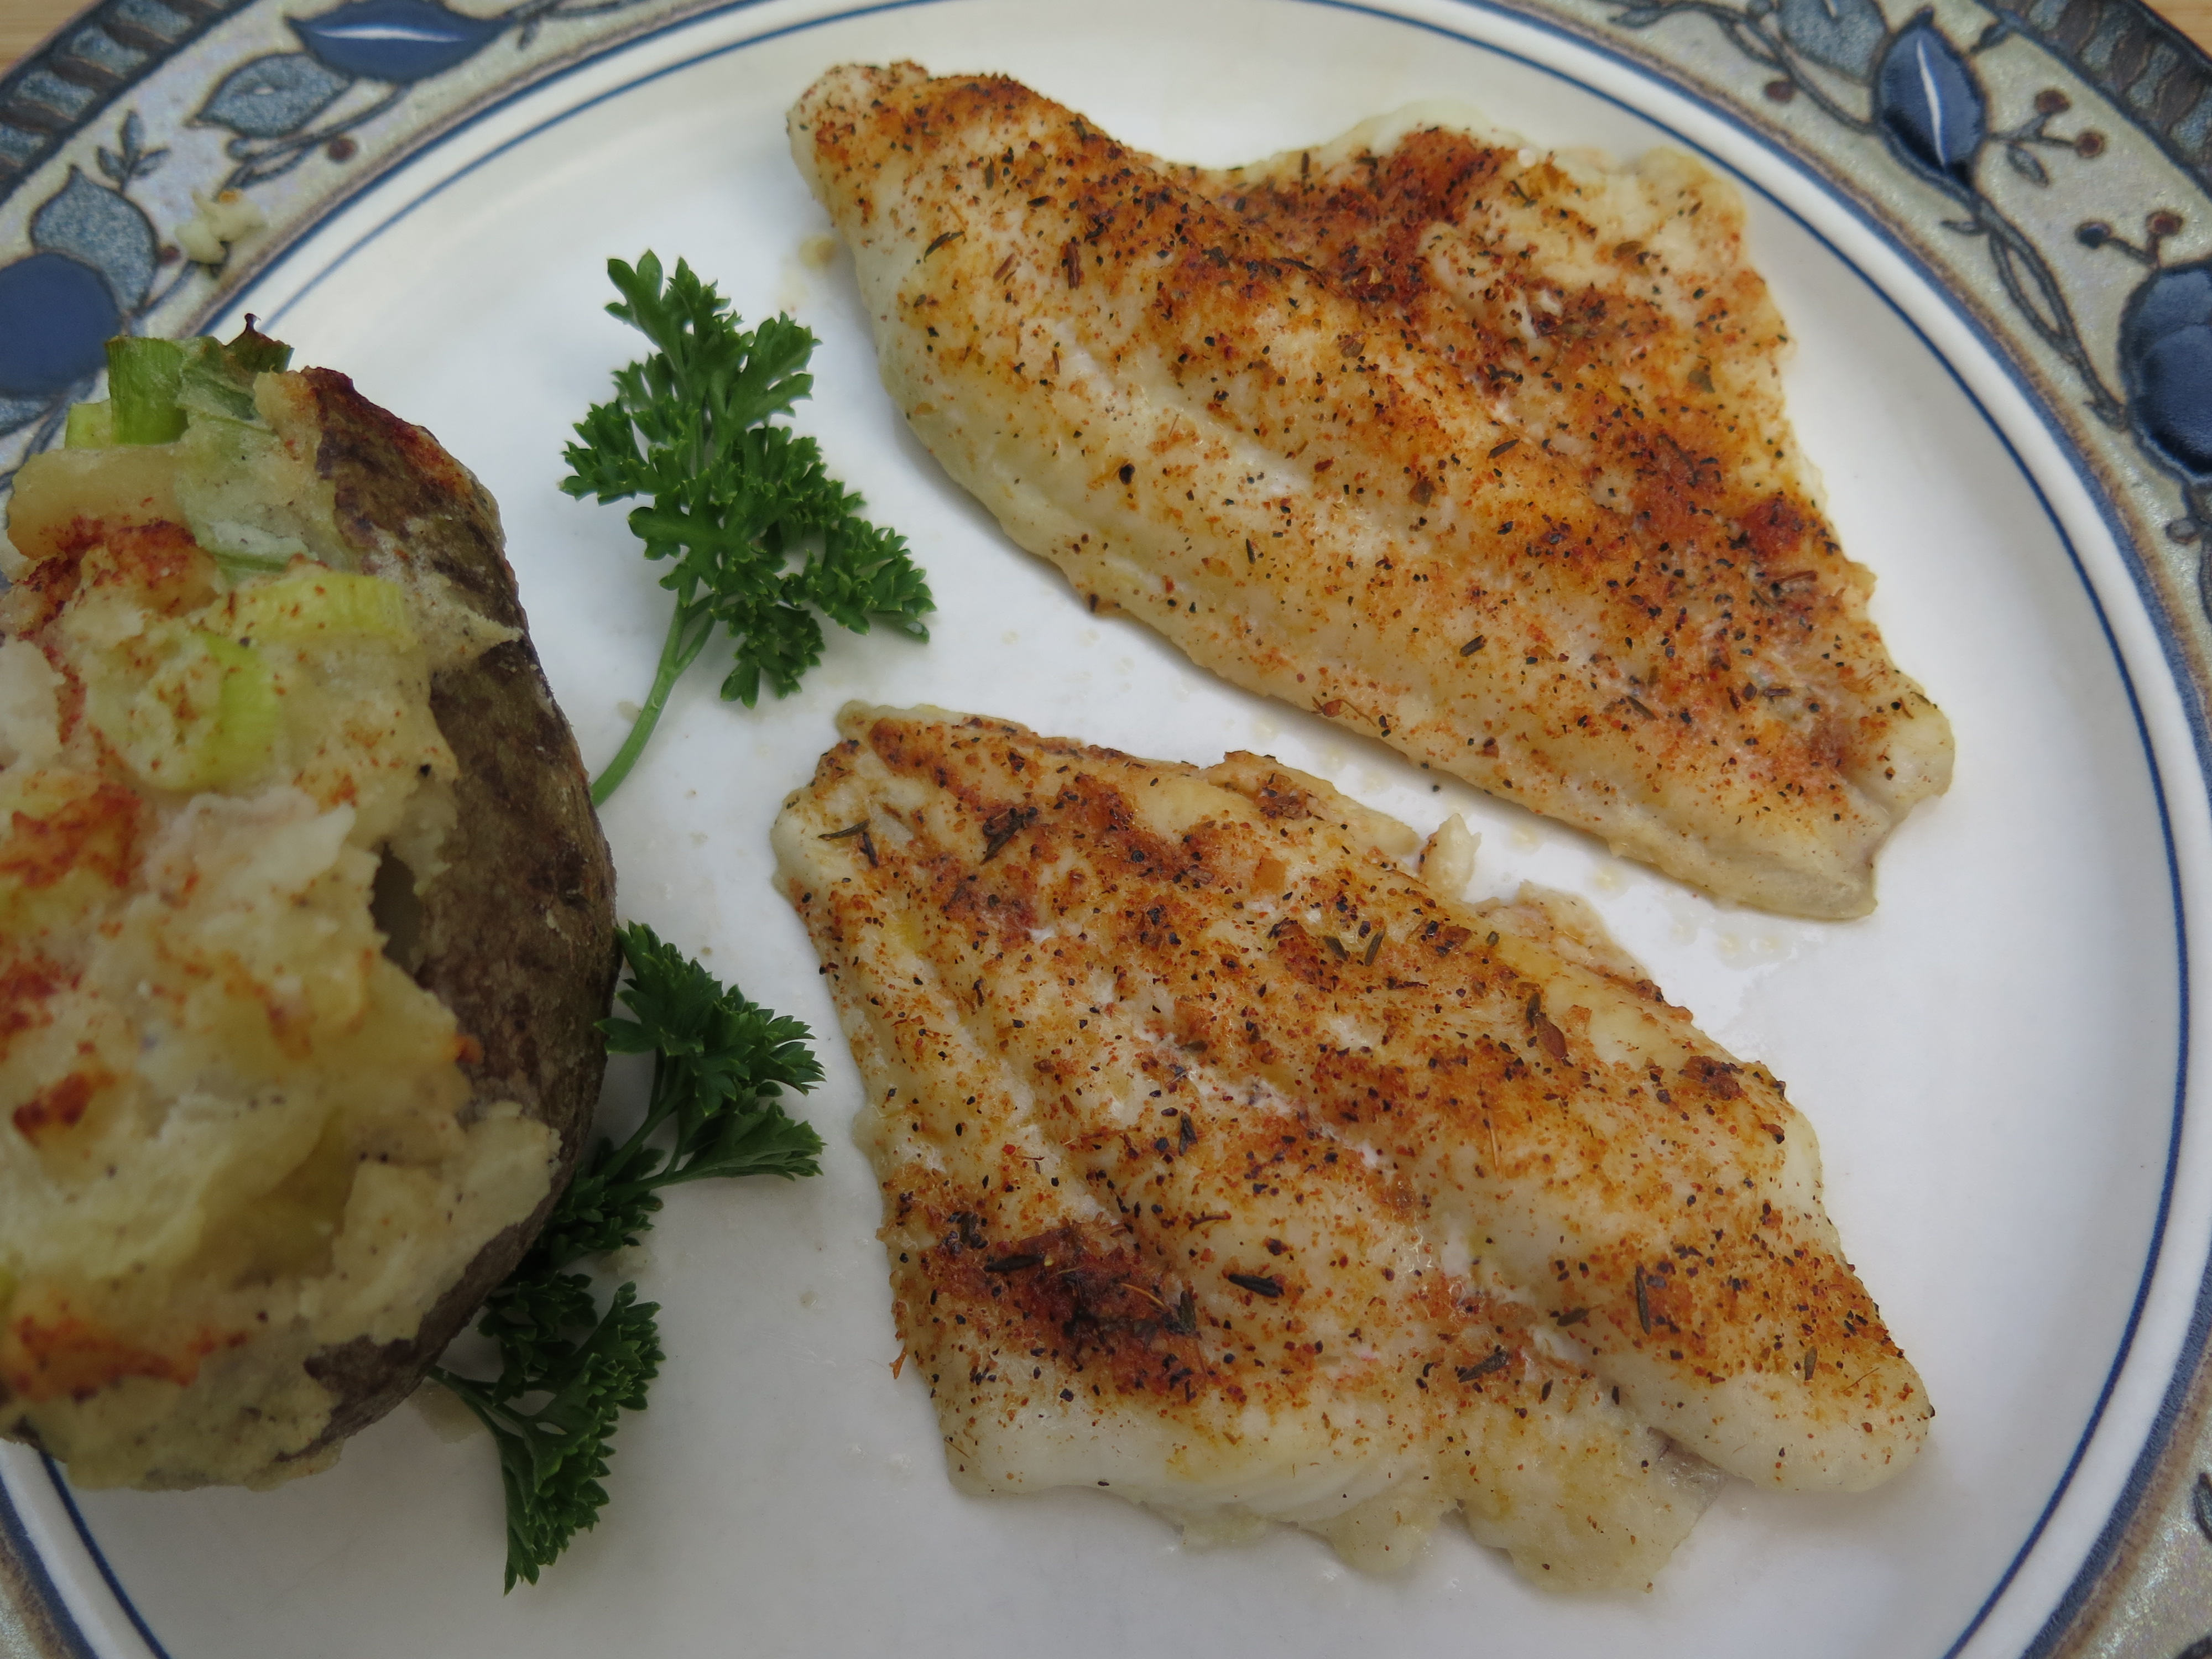 Pictures baked fish fillets recipe pictures catfishleague for Baked fish fillets